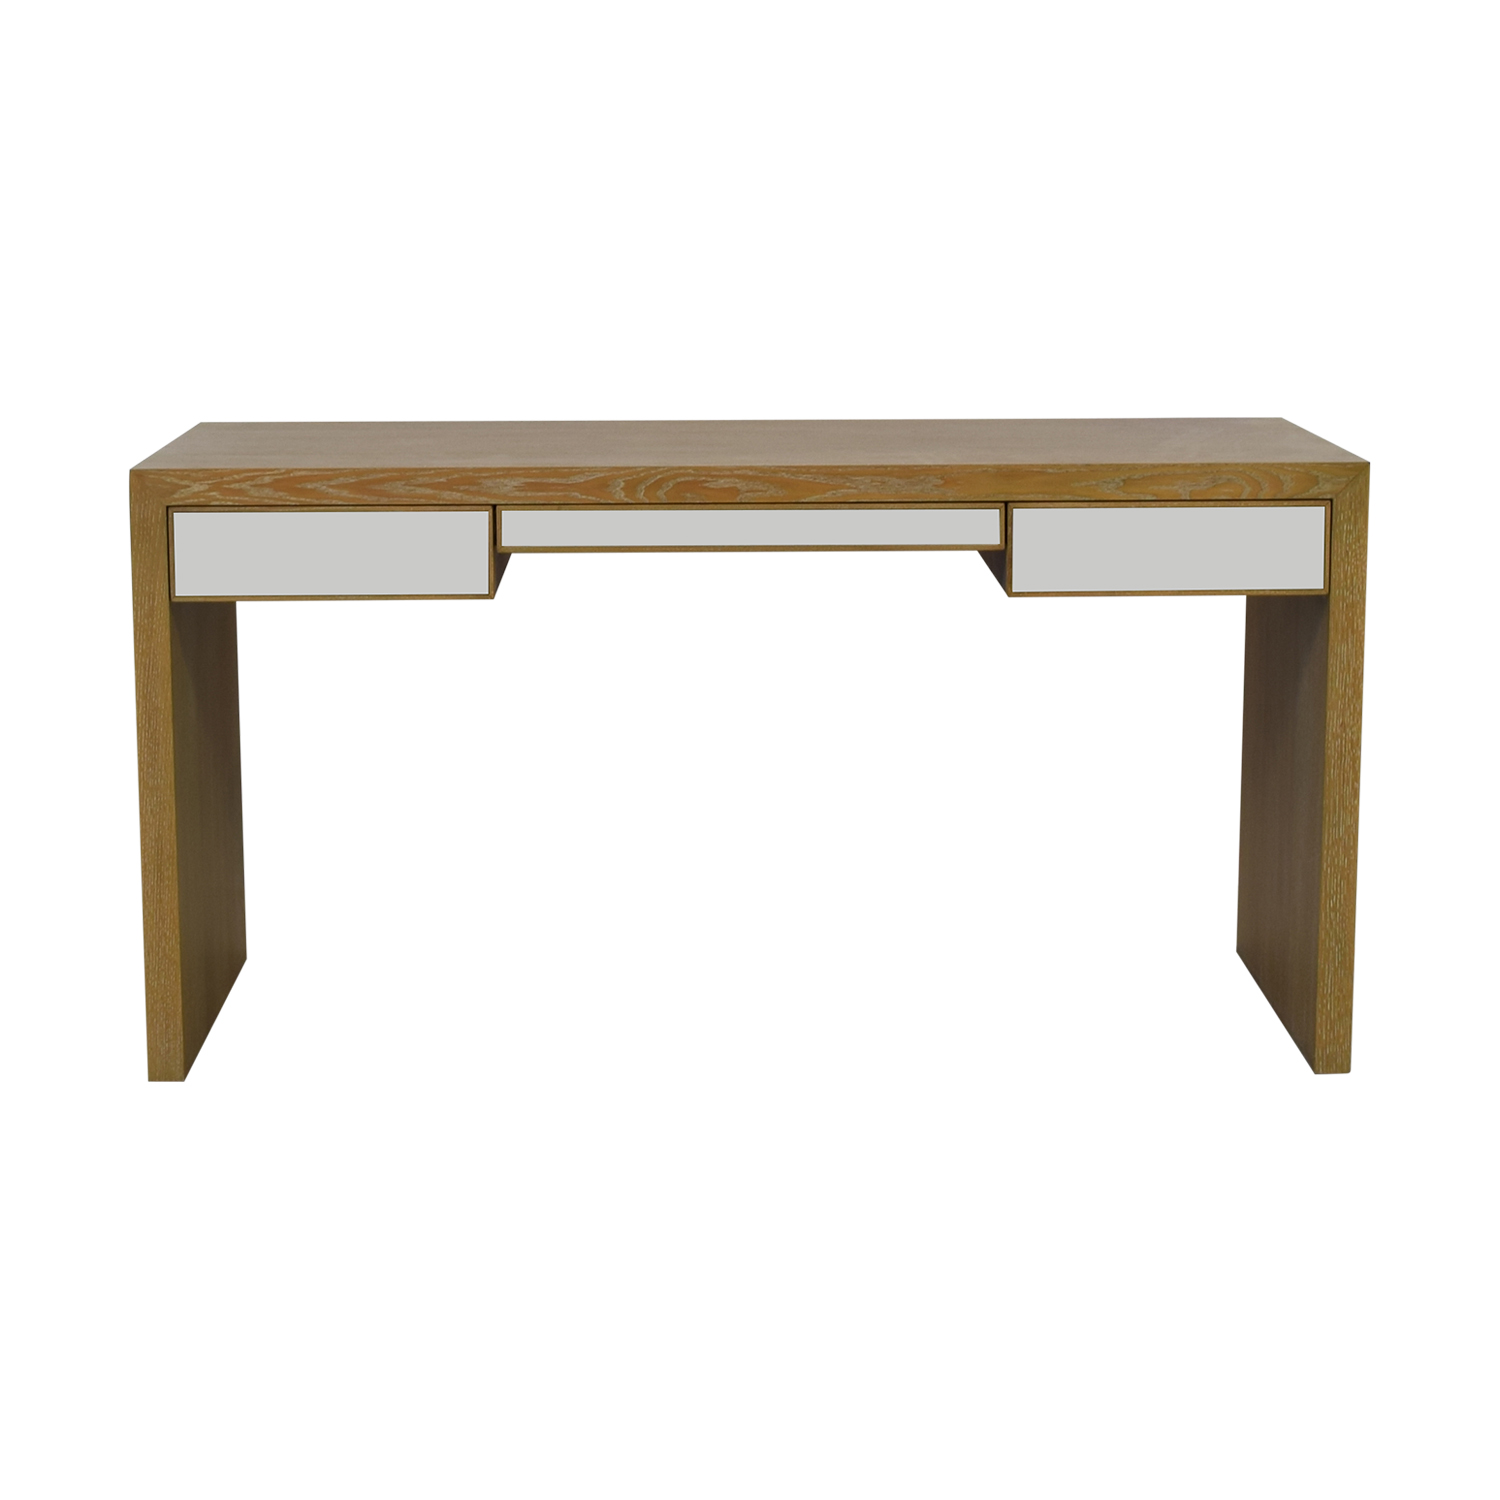 Mitchell Gold + Bob Williams Mitchell Gold + Bob Williams Fairbanks Mirror Desk discount